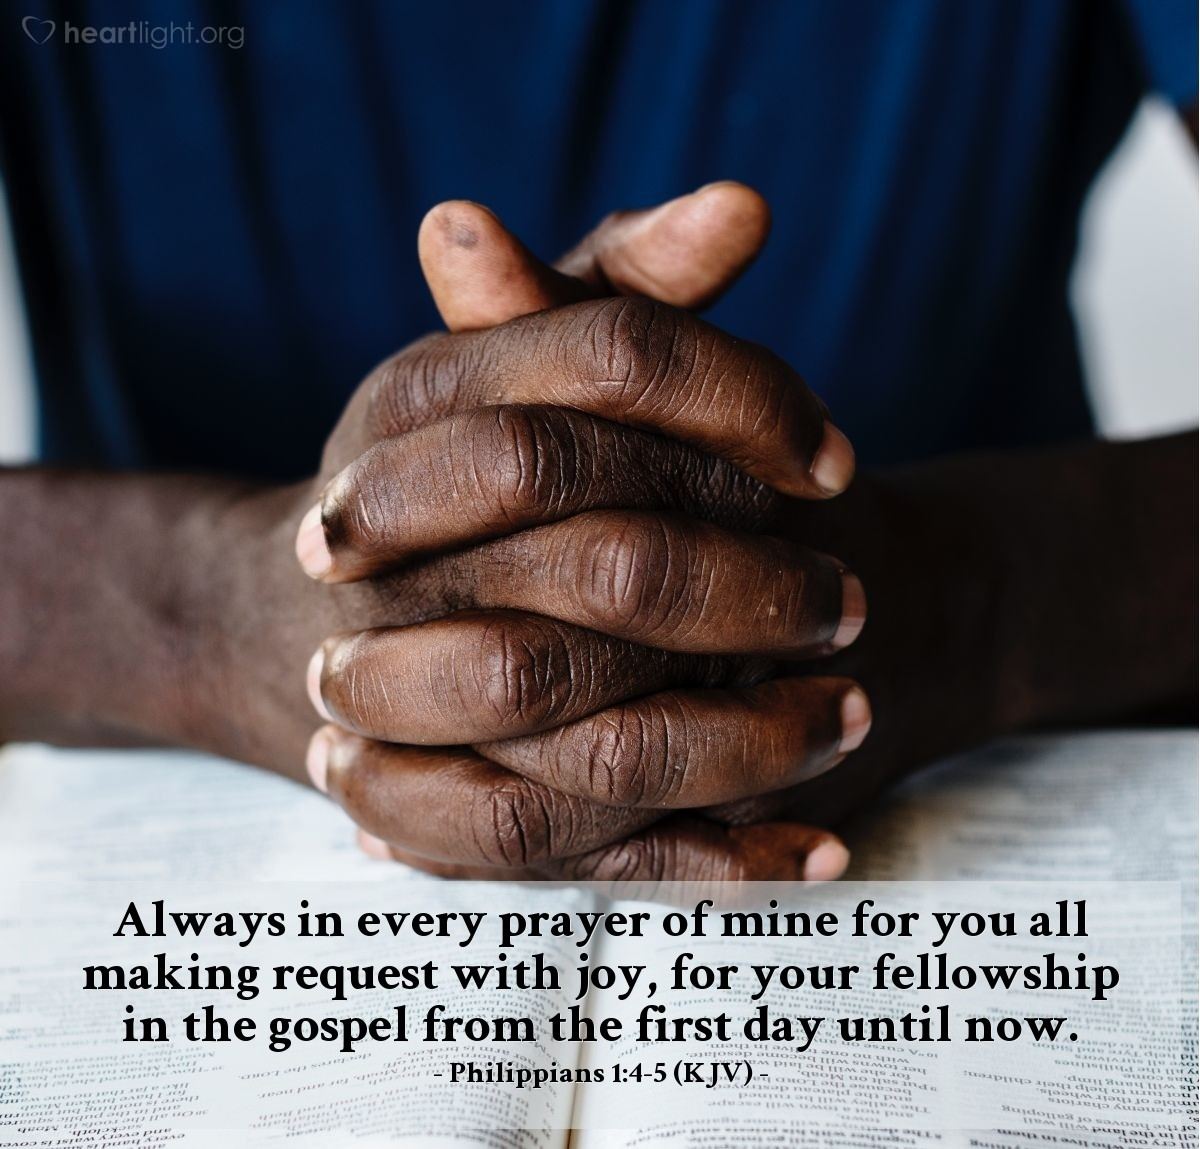 Illustration of Philippians 1:4-5 (KJV) — Always in every prayer of mine for you all making request with joy, for your fellowship in the gospel from the first day until now.